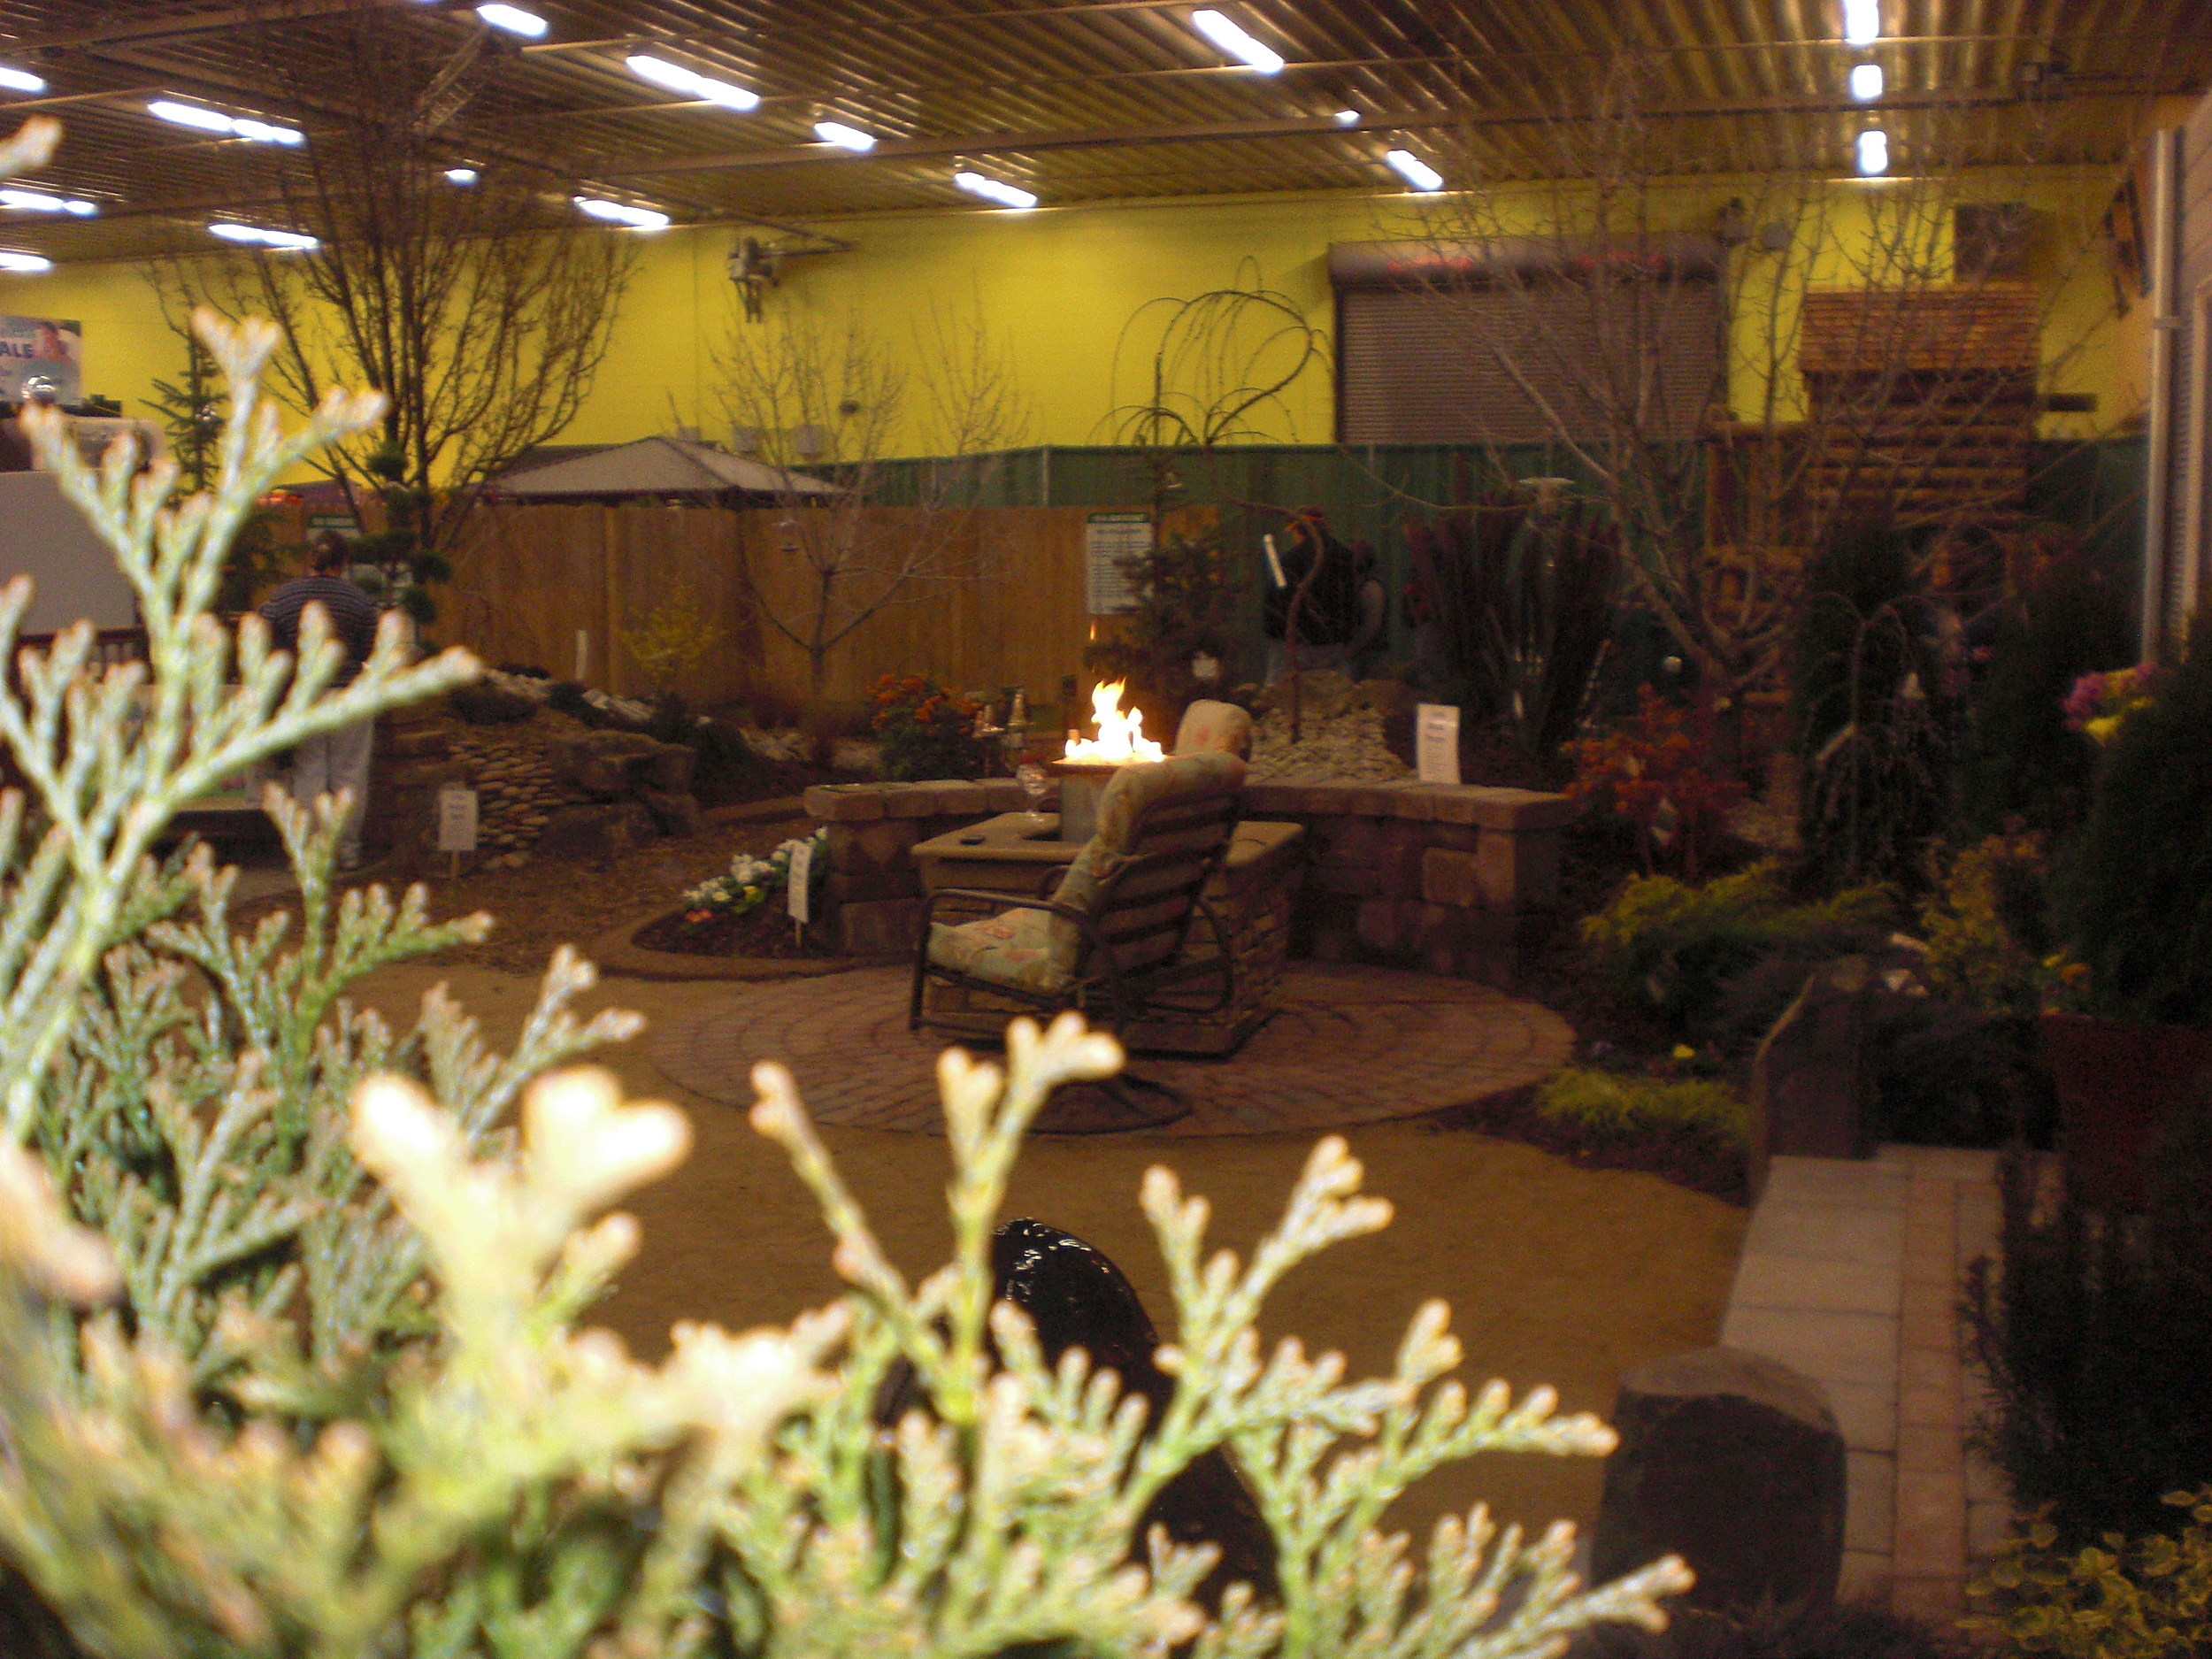 Southern Idaho Home And Garden Show Begins February 19